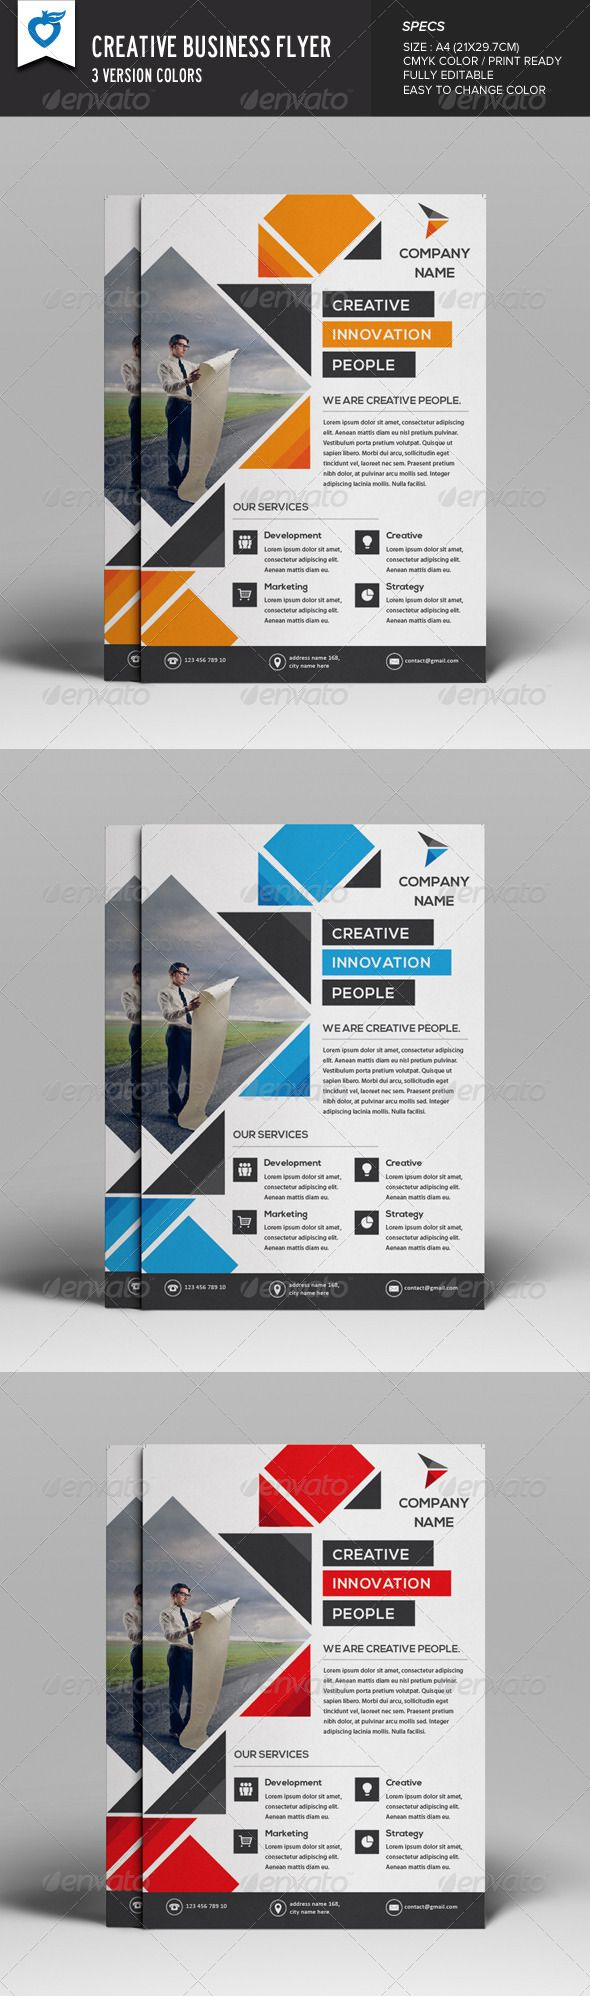 Pin by ralfiansyah on cv kreative pinterest buy flyer by leaflove on graphicriver this layout is suitable for any project purpose accmission Images